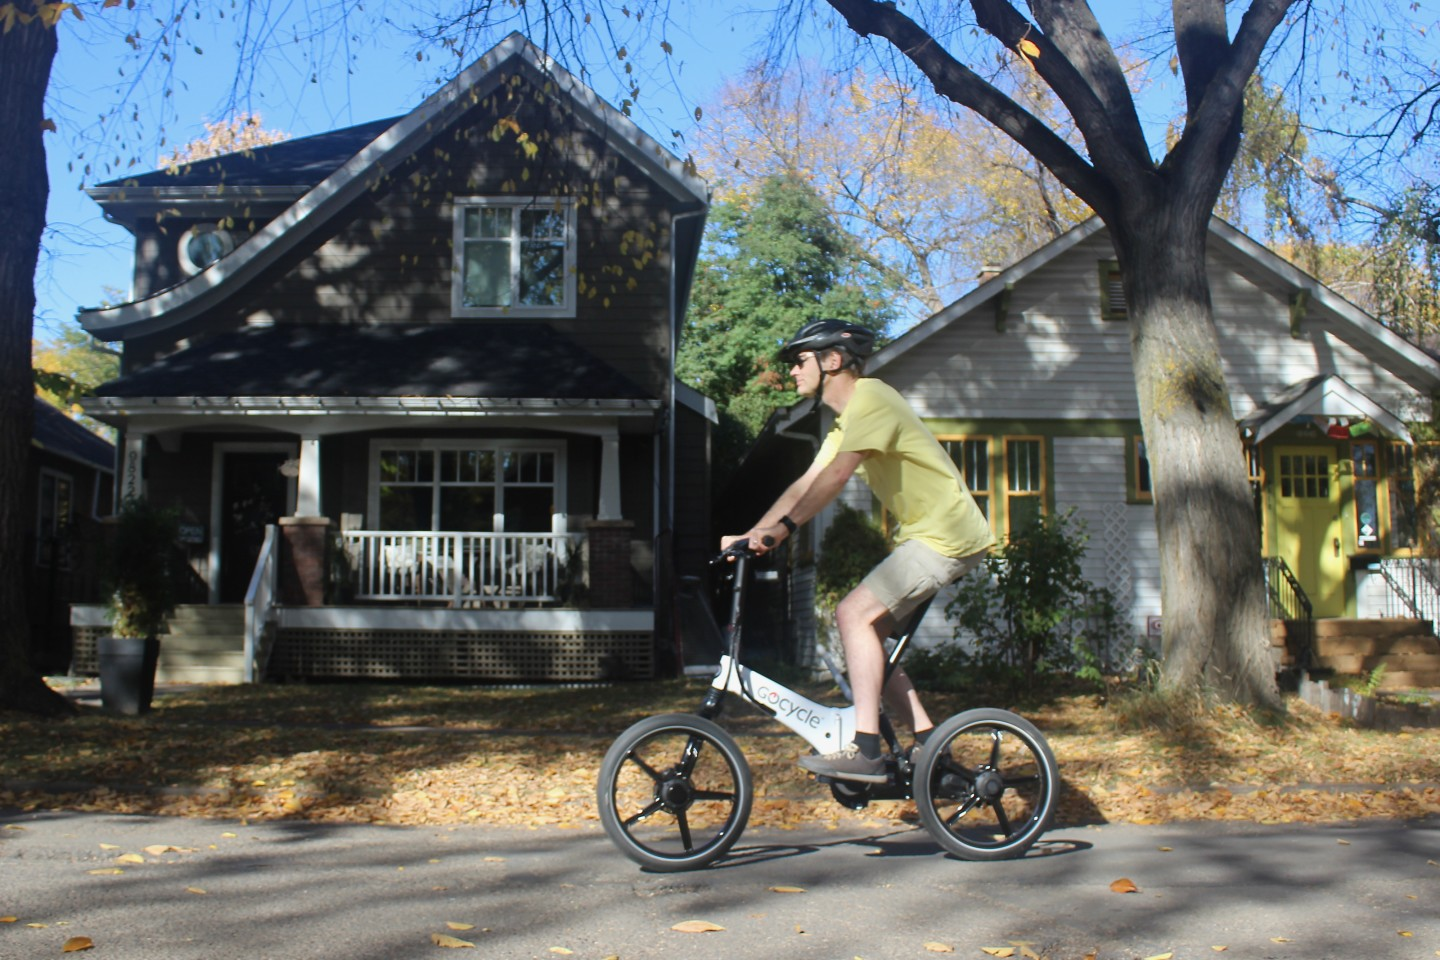 The GoCycle GX accommodates riders weighing up to 100 kg (220 lb)